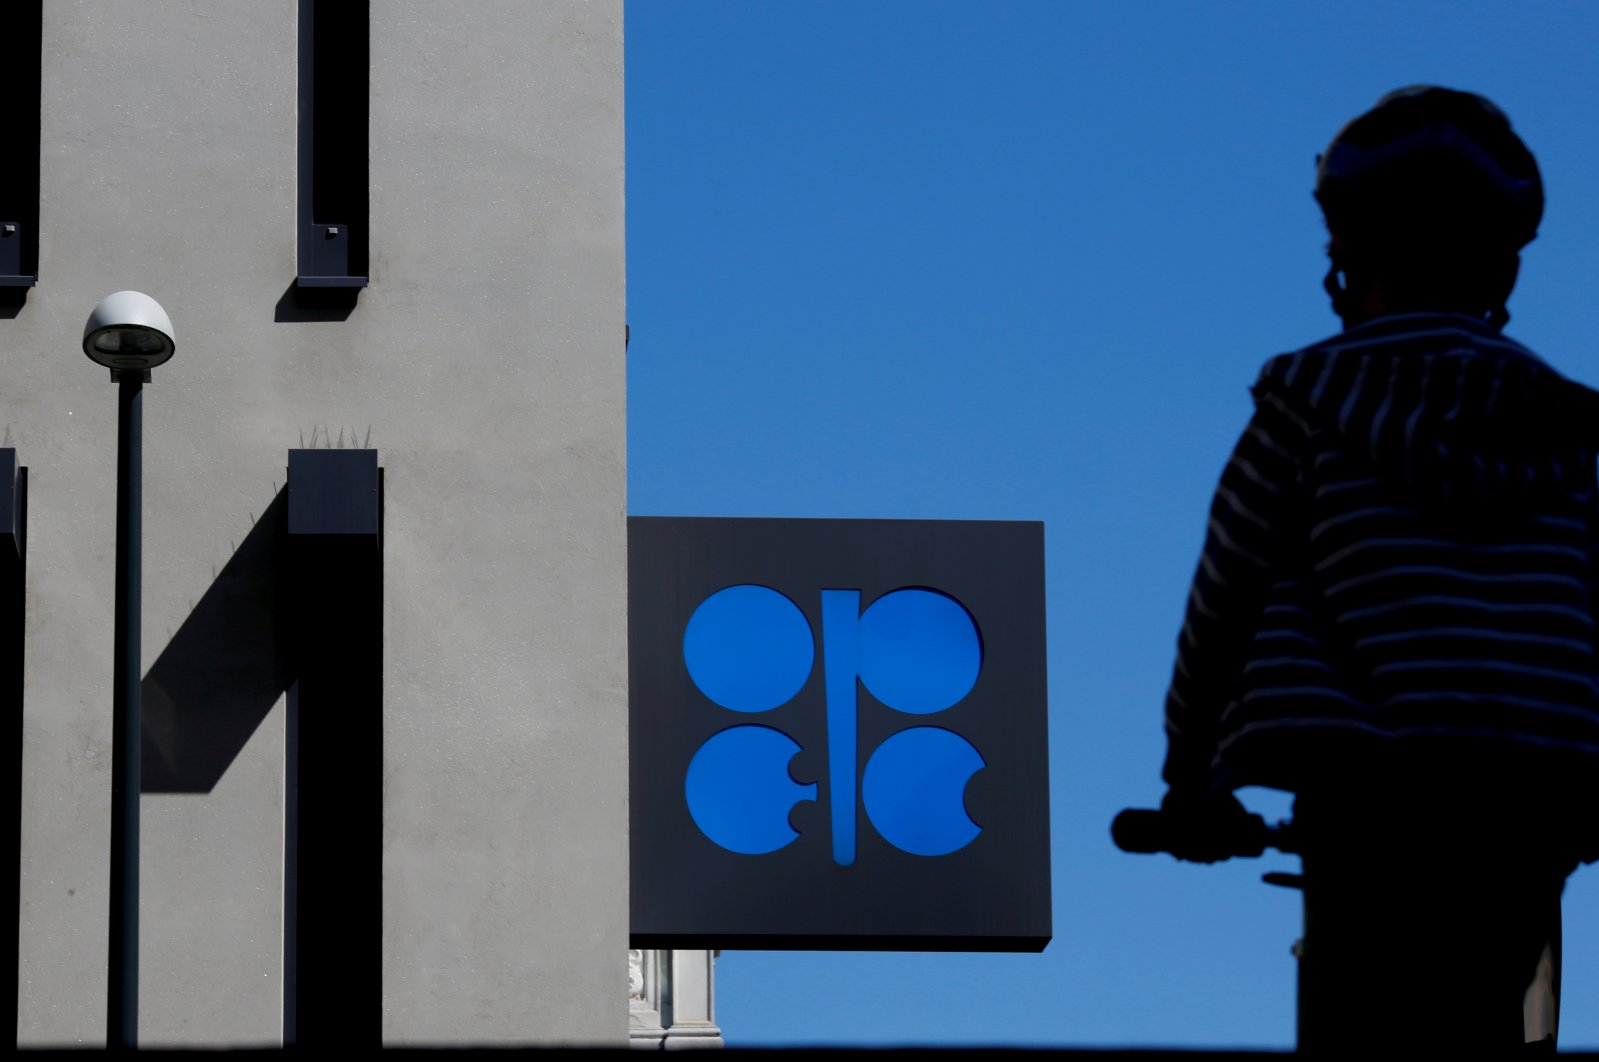 A person passes the logo of the Organization of the Petroleum Exporting Countries (OPEC) in front of its headquarters in Vienna, Austria on April 9, 2020. (Reuters Photo)